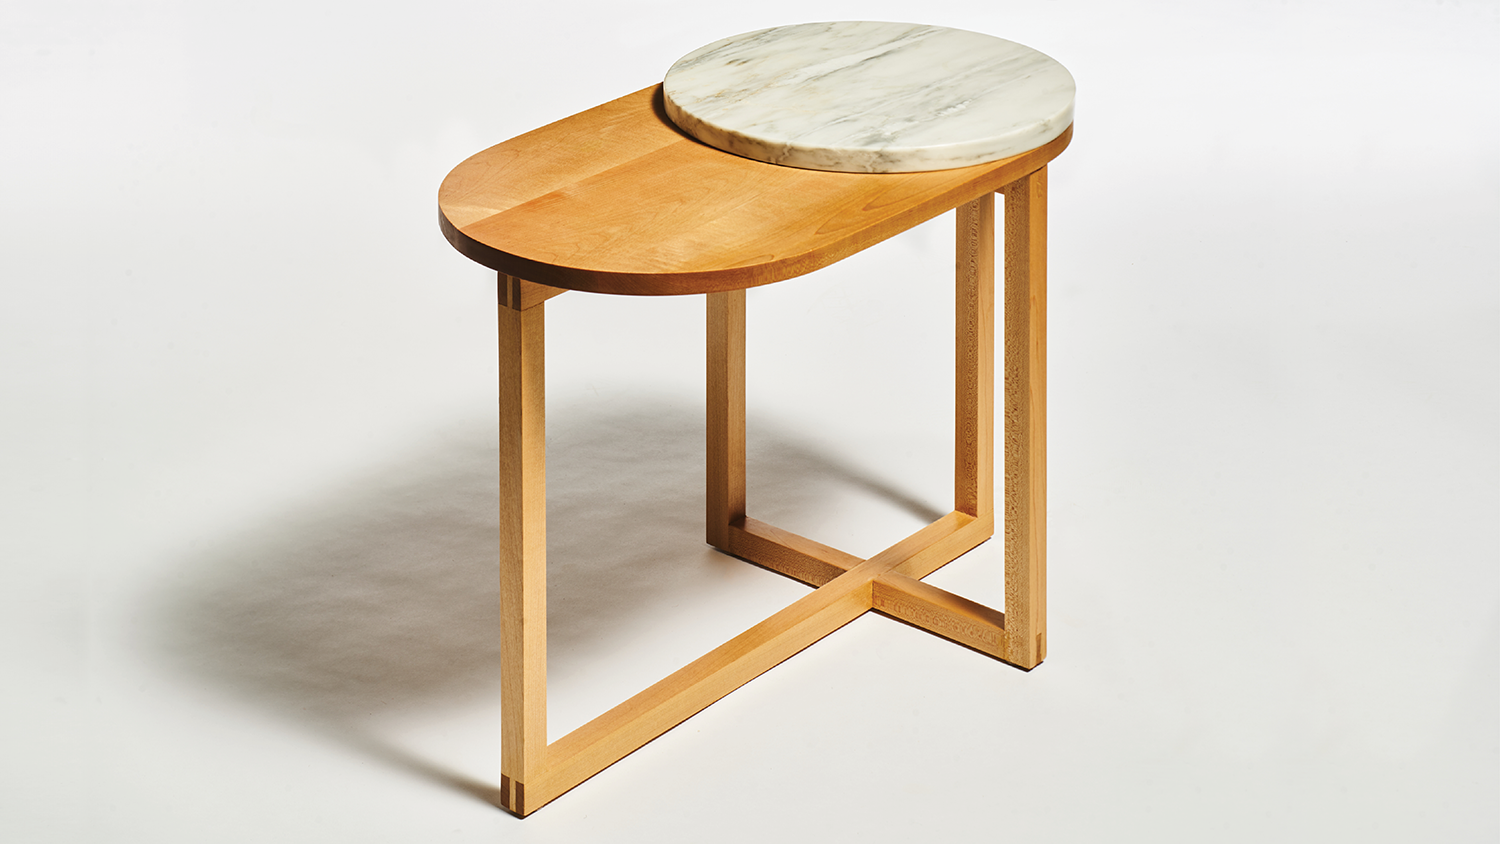 A table designed by Yichi Cheng